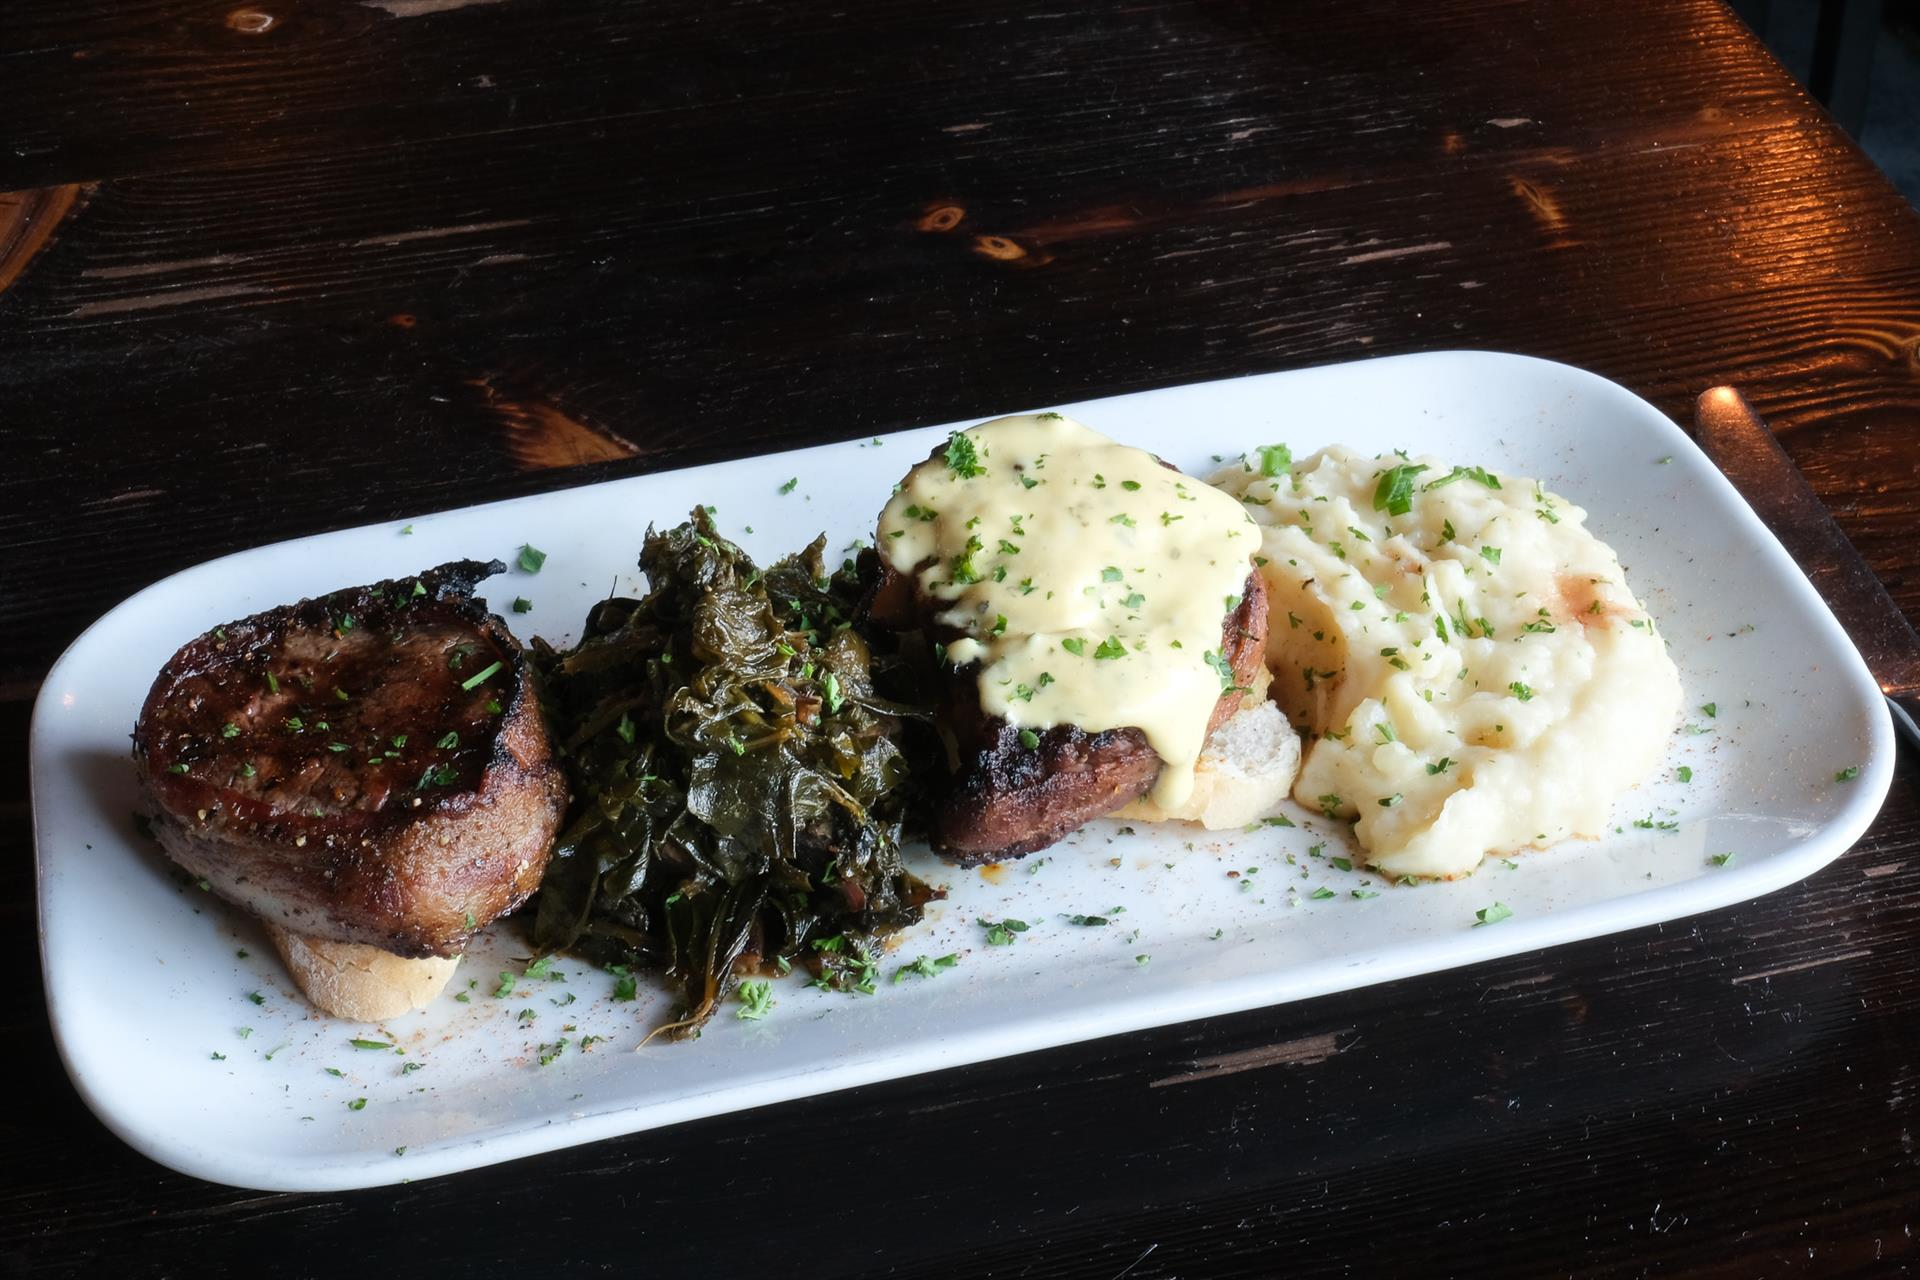 Cajun Prime Rib for 2. Not your typical prime rib. The 3-day process produces an amazing dining experience: blackened in a cast iron skillet, served with brown butter garlic sauce, a side of horseradish cream, mashed potatoes, and southern cooked greens